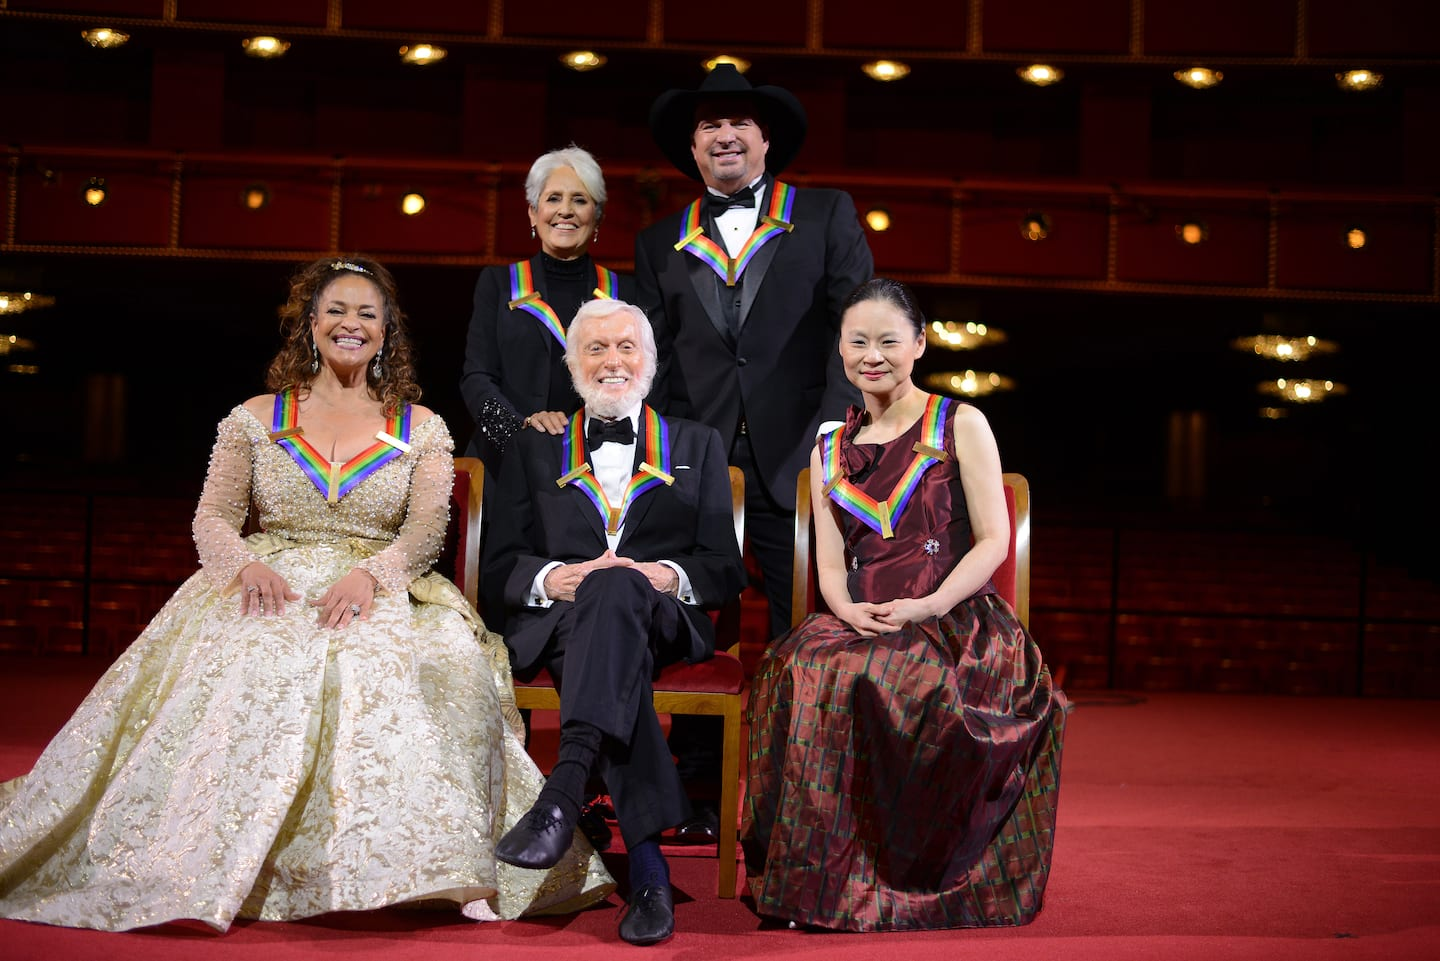 Emerging from a long pause, the return of the Kennedy Center Honors is a breath of fresh air